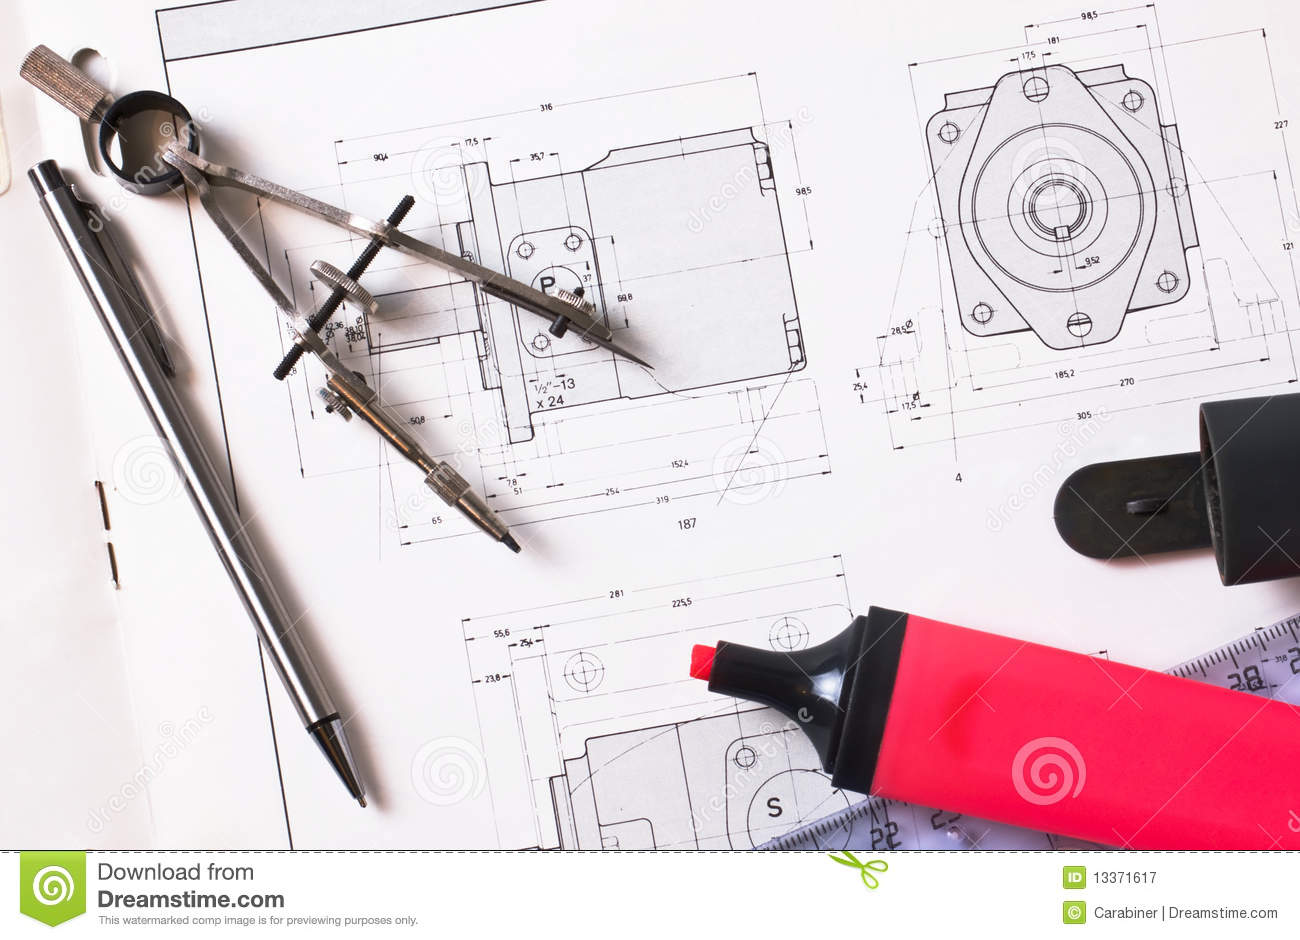 Drawing tools royalty free stock photography image 13371617 for Online drawing tool